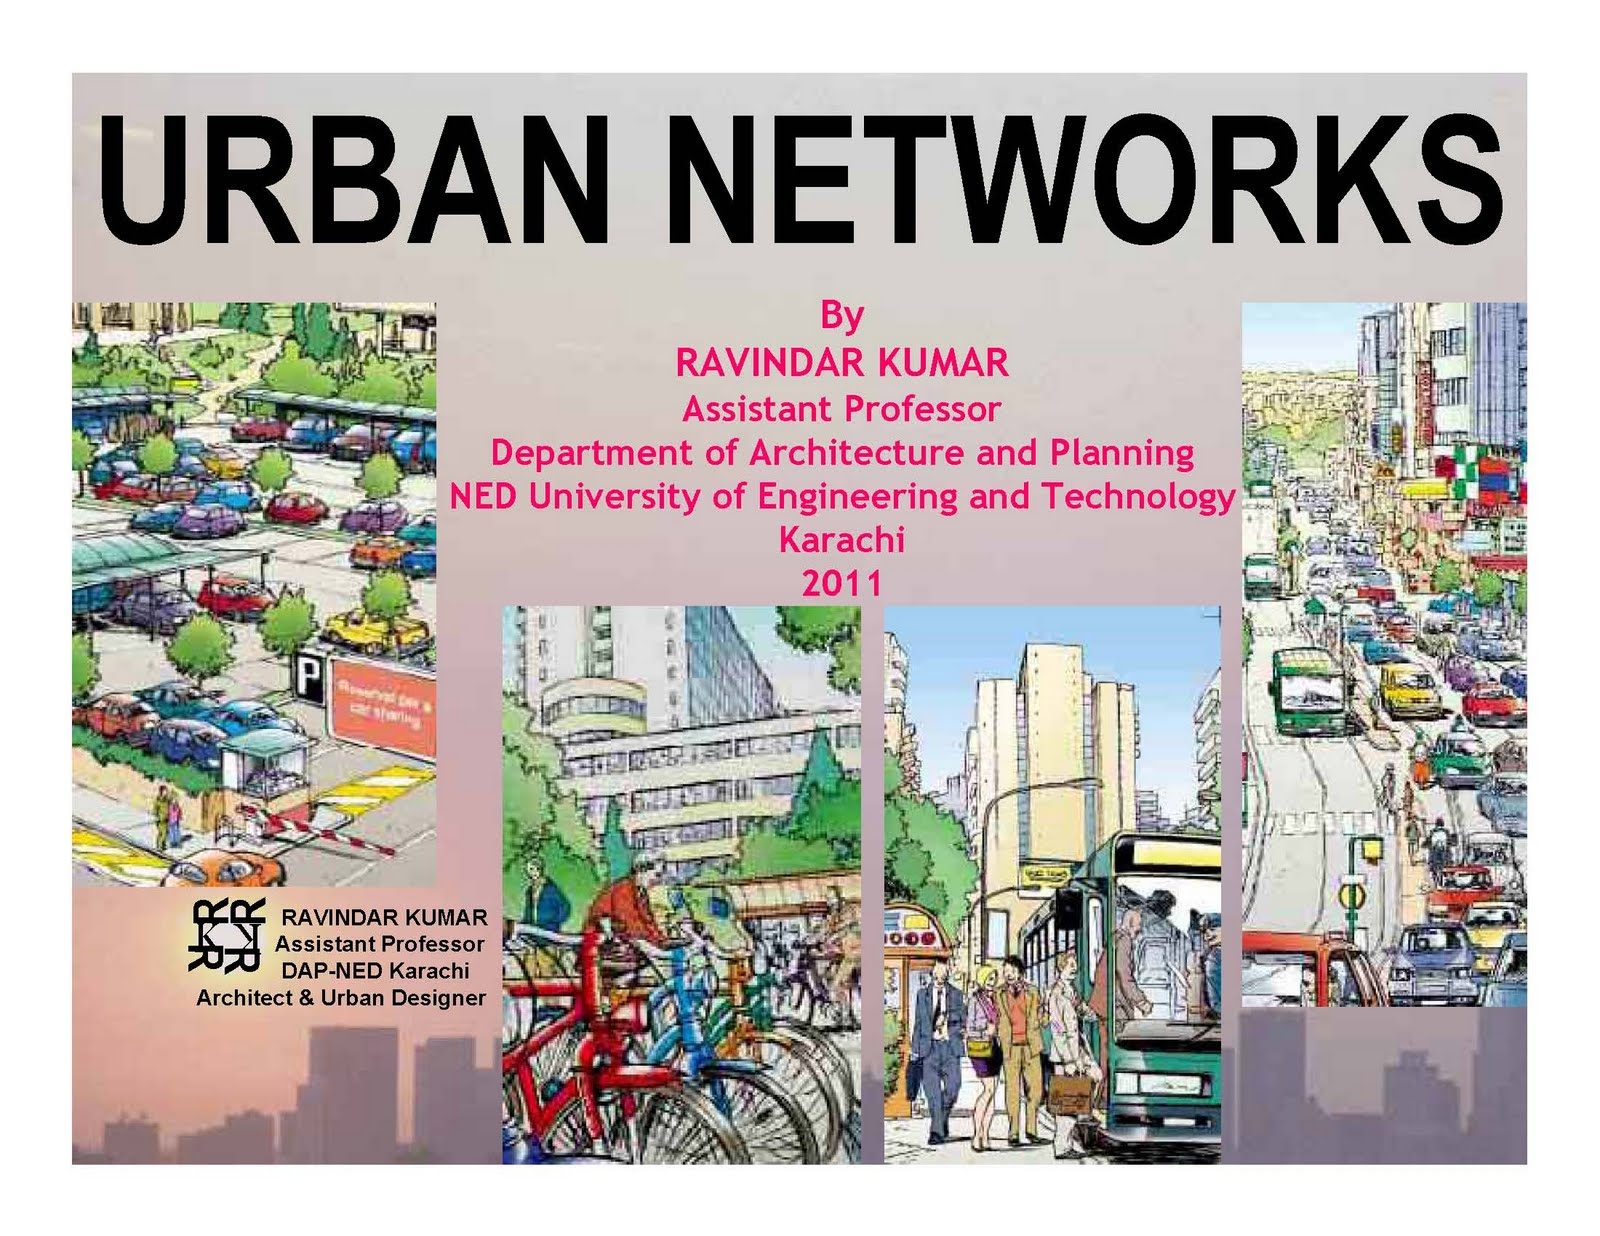 URBAN NETWORKS: INDICATORS; CRITERIA; QUALITY; APPLICATIONS; LAND OWNERSHIP  IN URBAN PLANNING